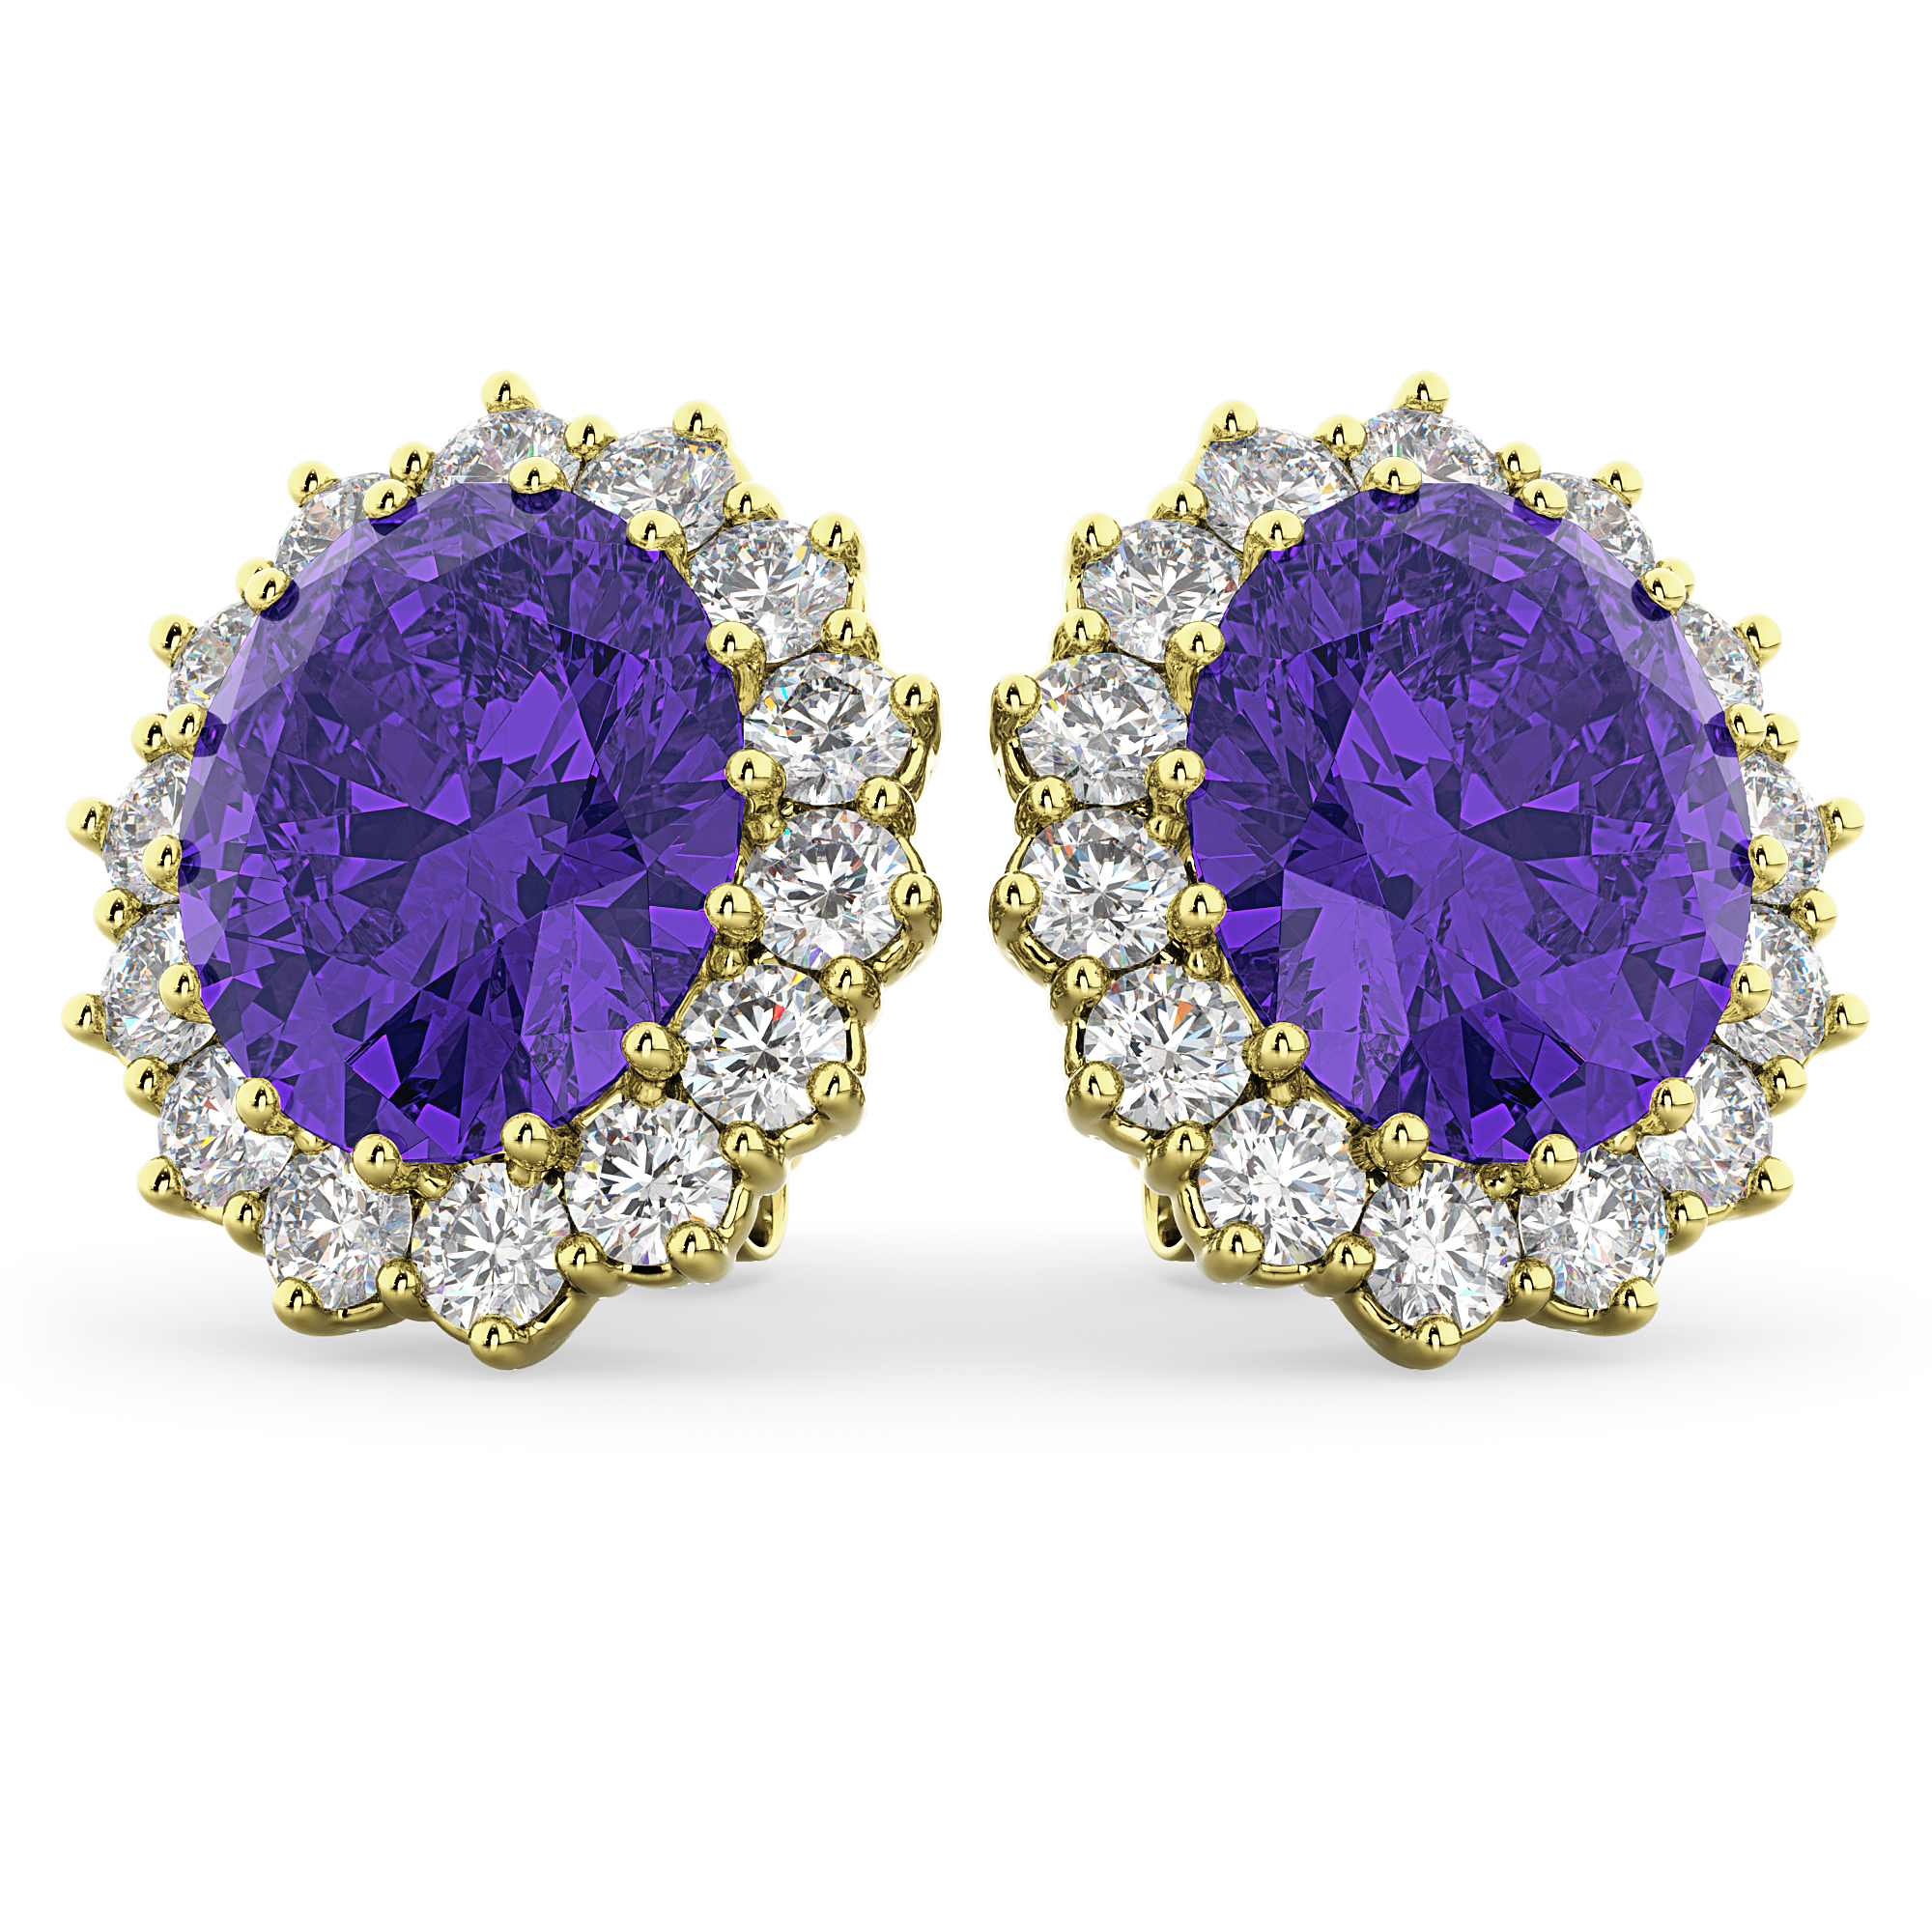 Oval Tanzanite & Diamond Accented Earrings 14k Yellow Gold (10.80ctw)